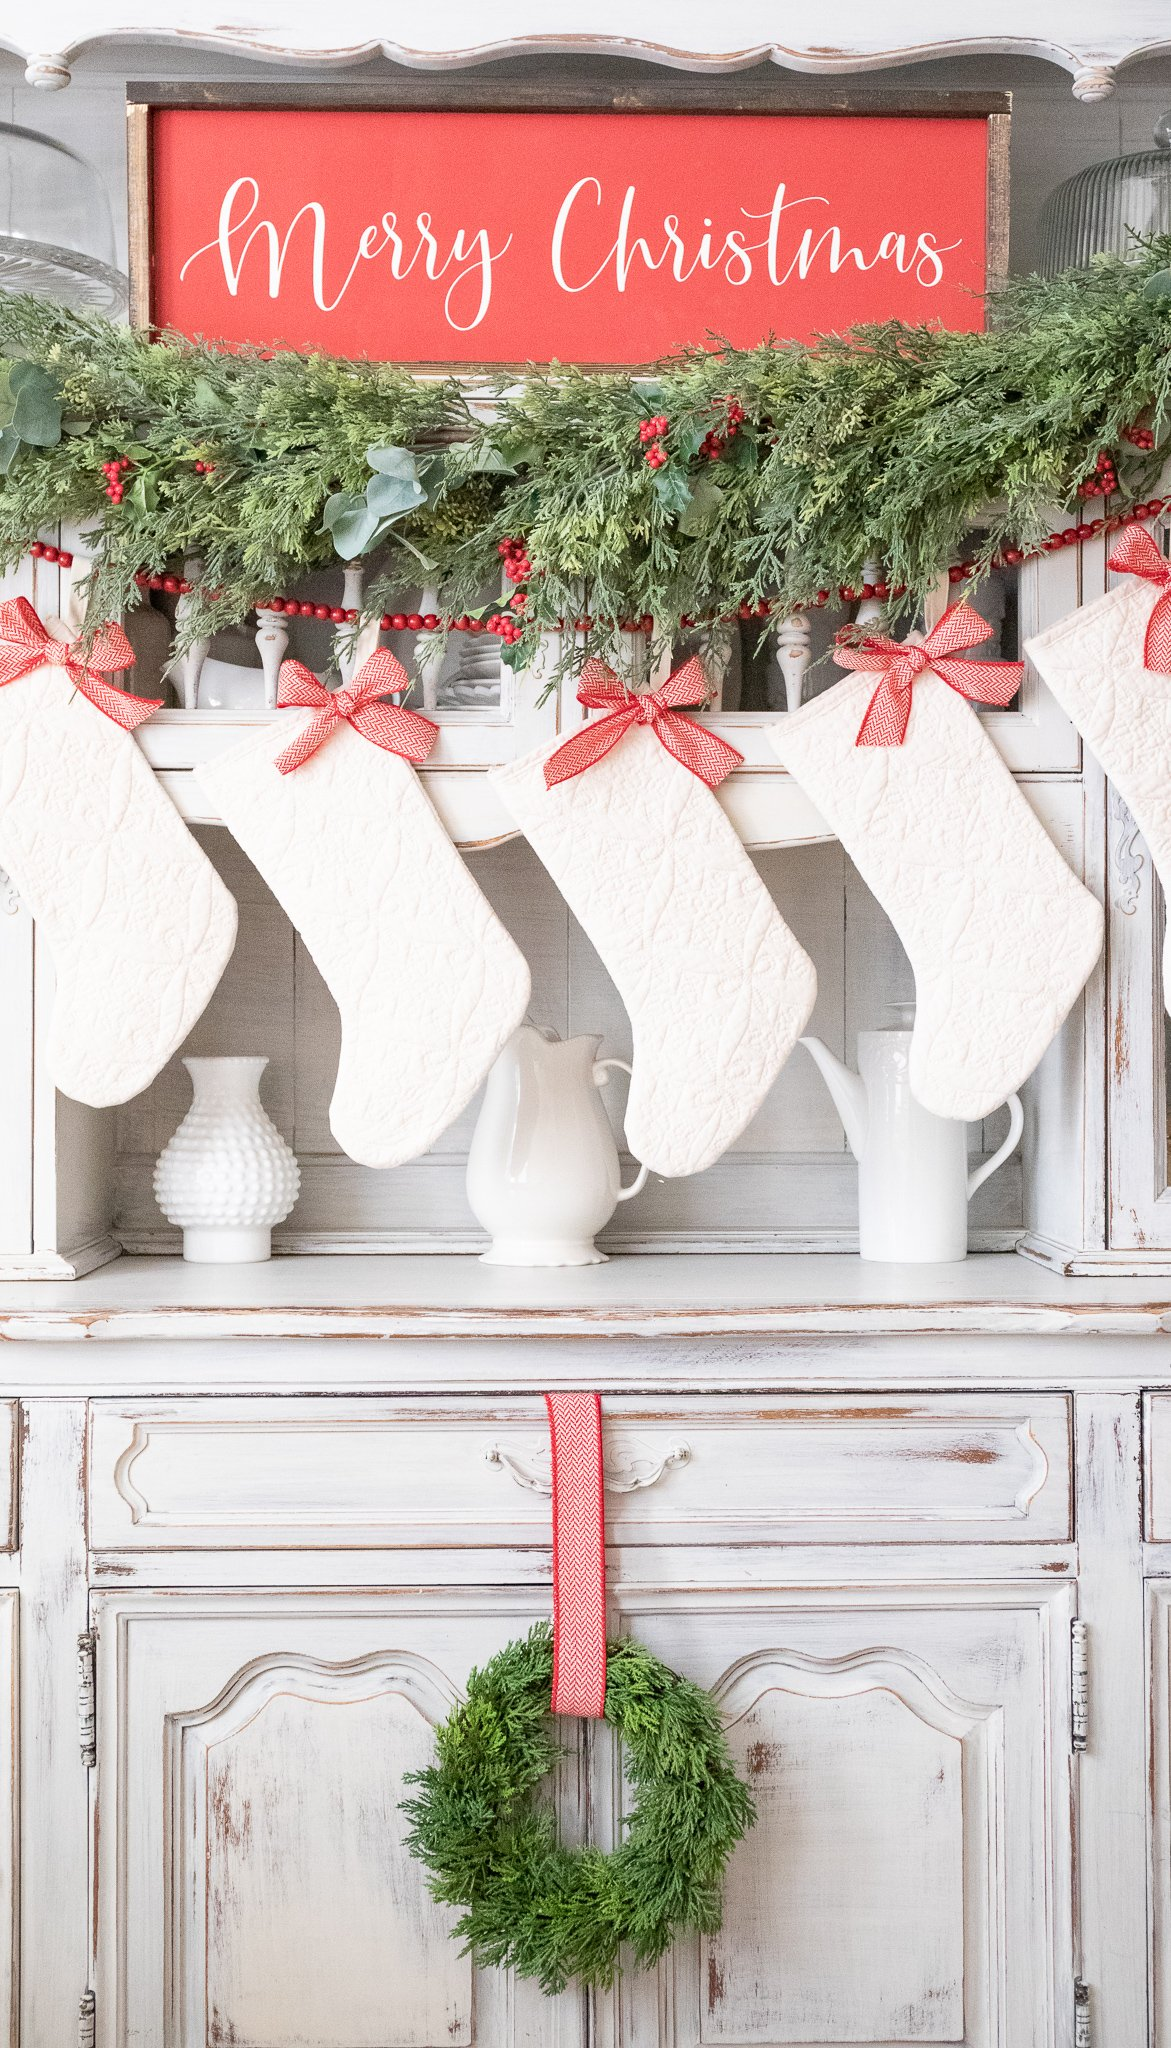 Christmas Decorations-Red and Green Classic Christmas Decor Mantle Stockings Flocked Christmas Tree white christmas stockings